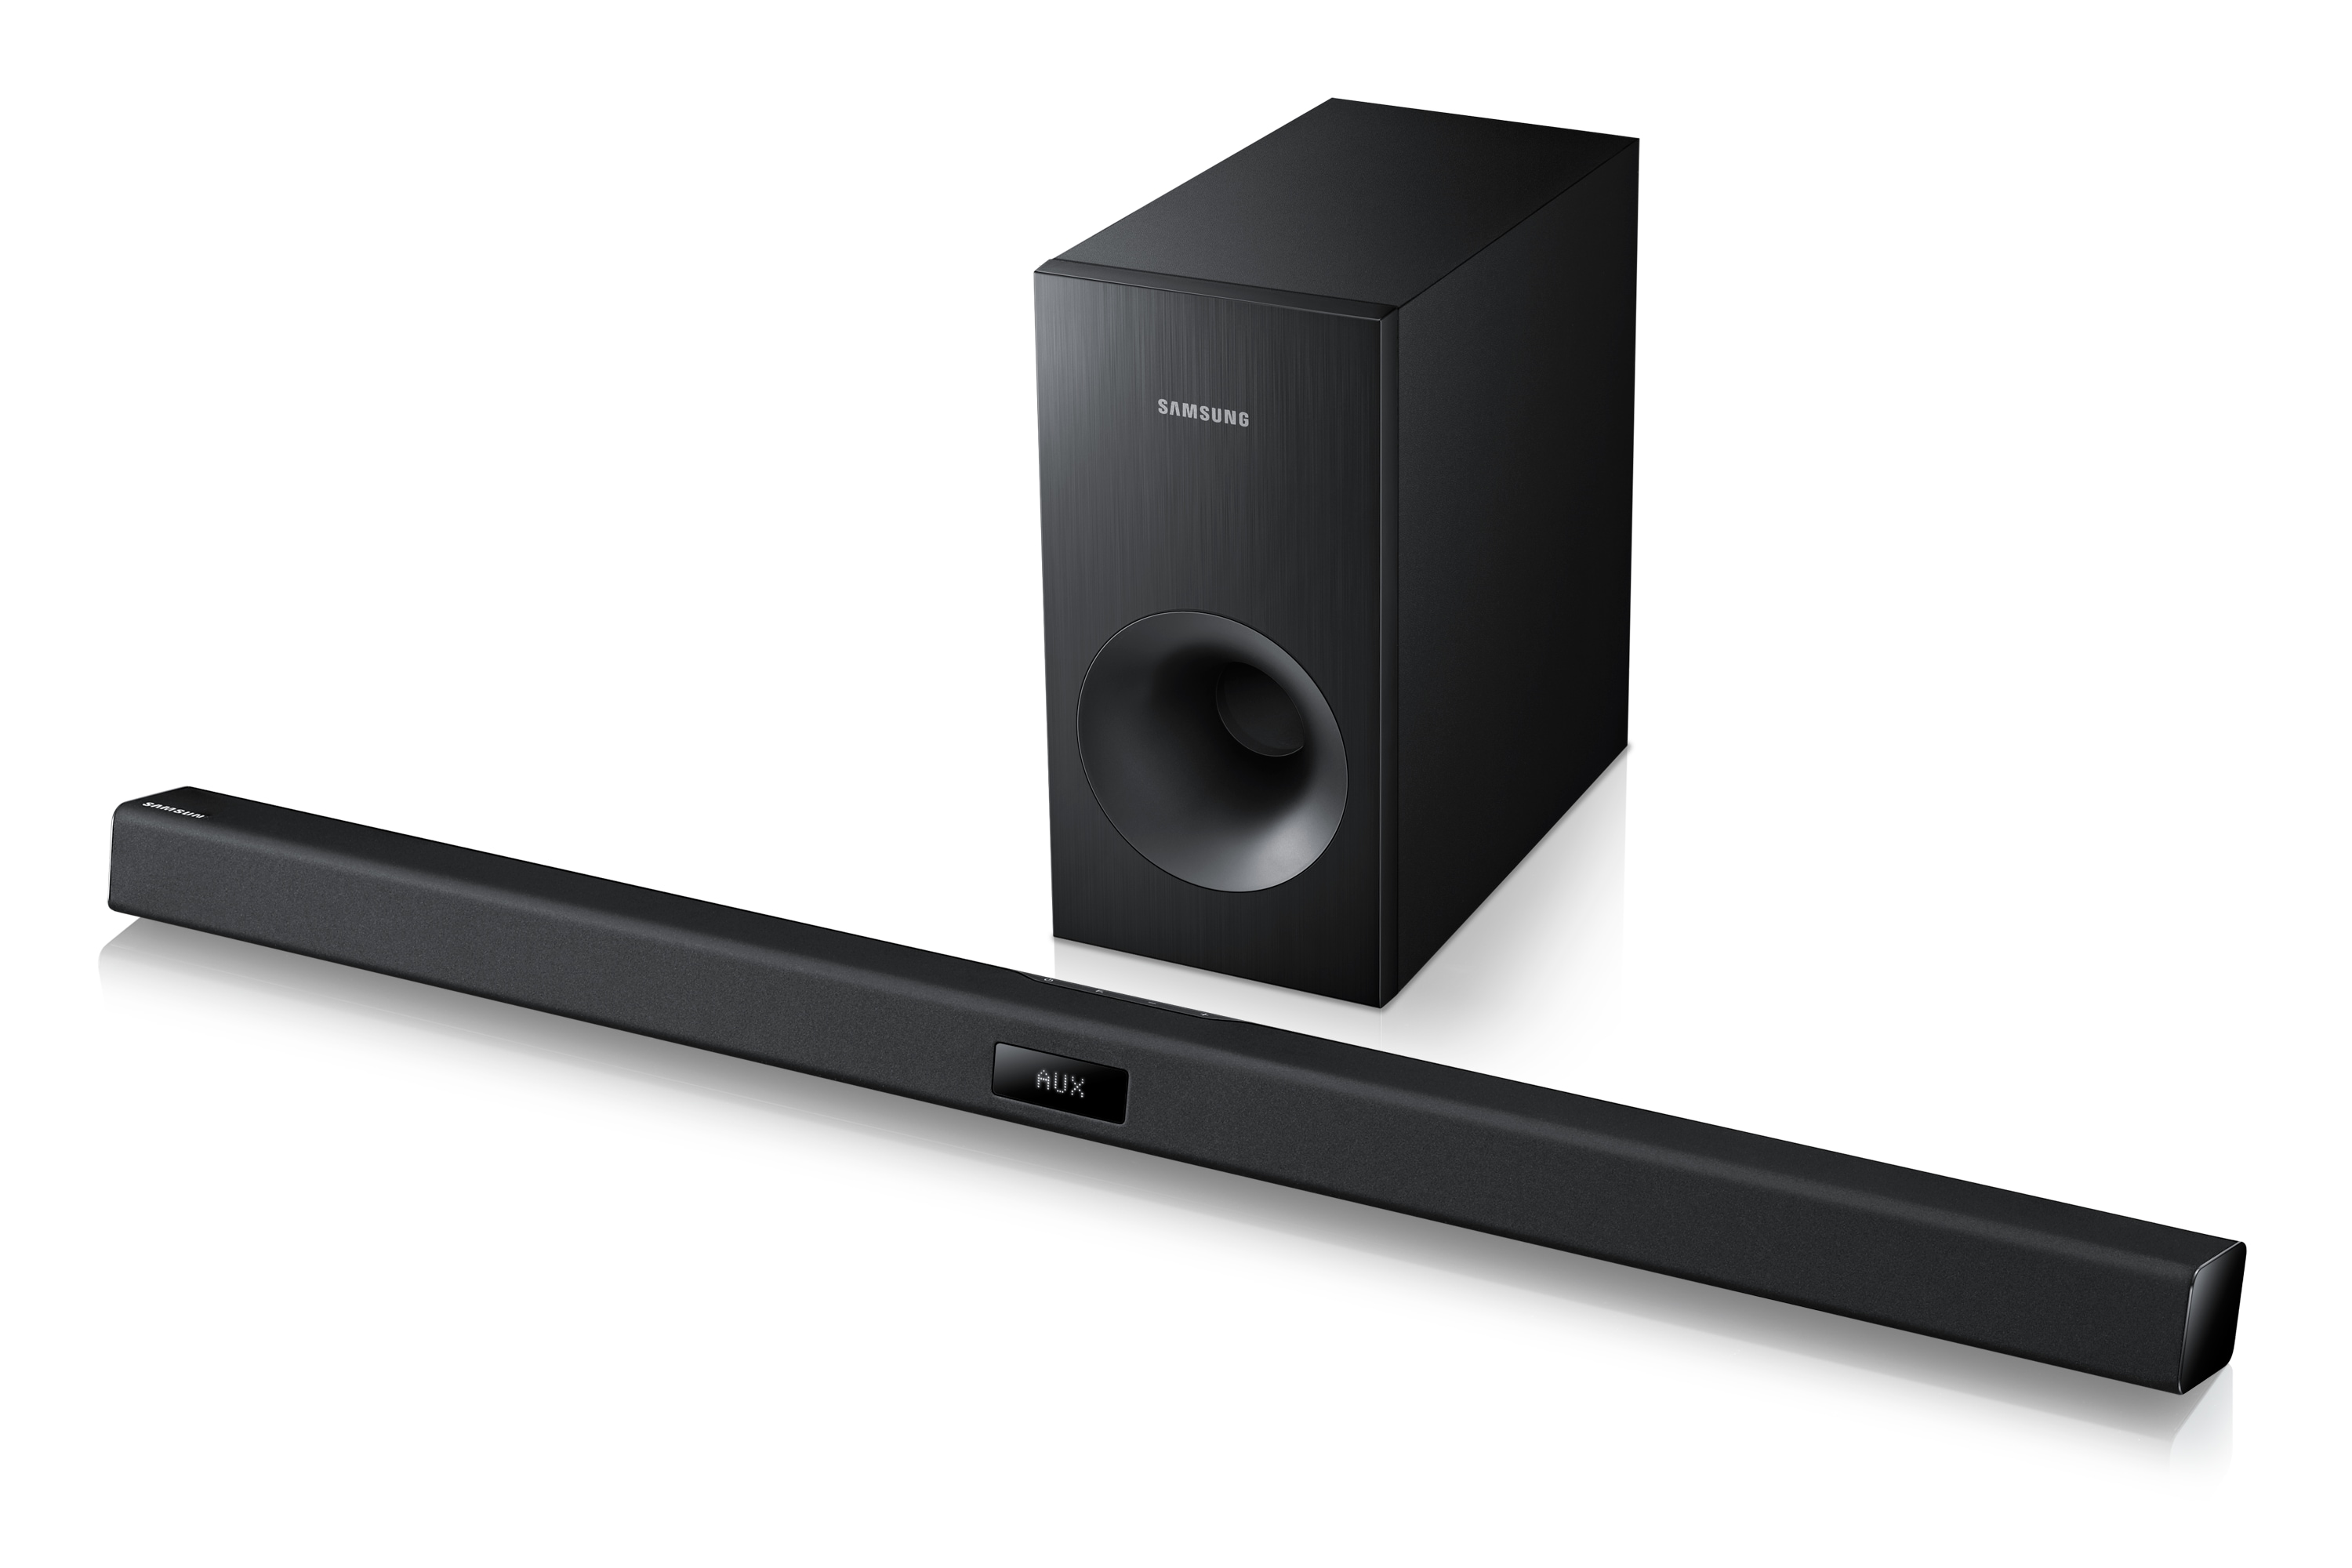 HW-F355 40 Soundbar with SoundShare